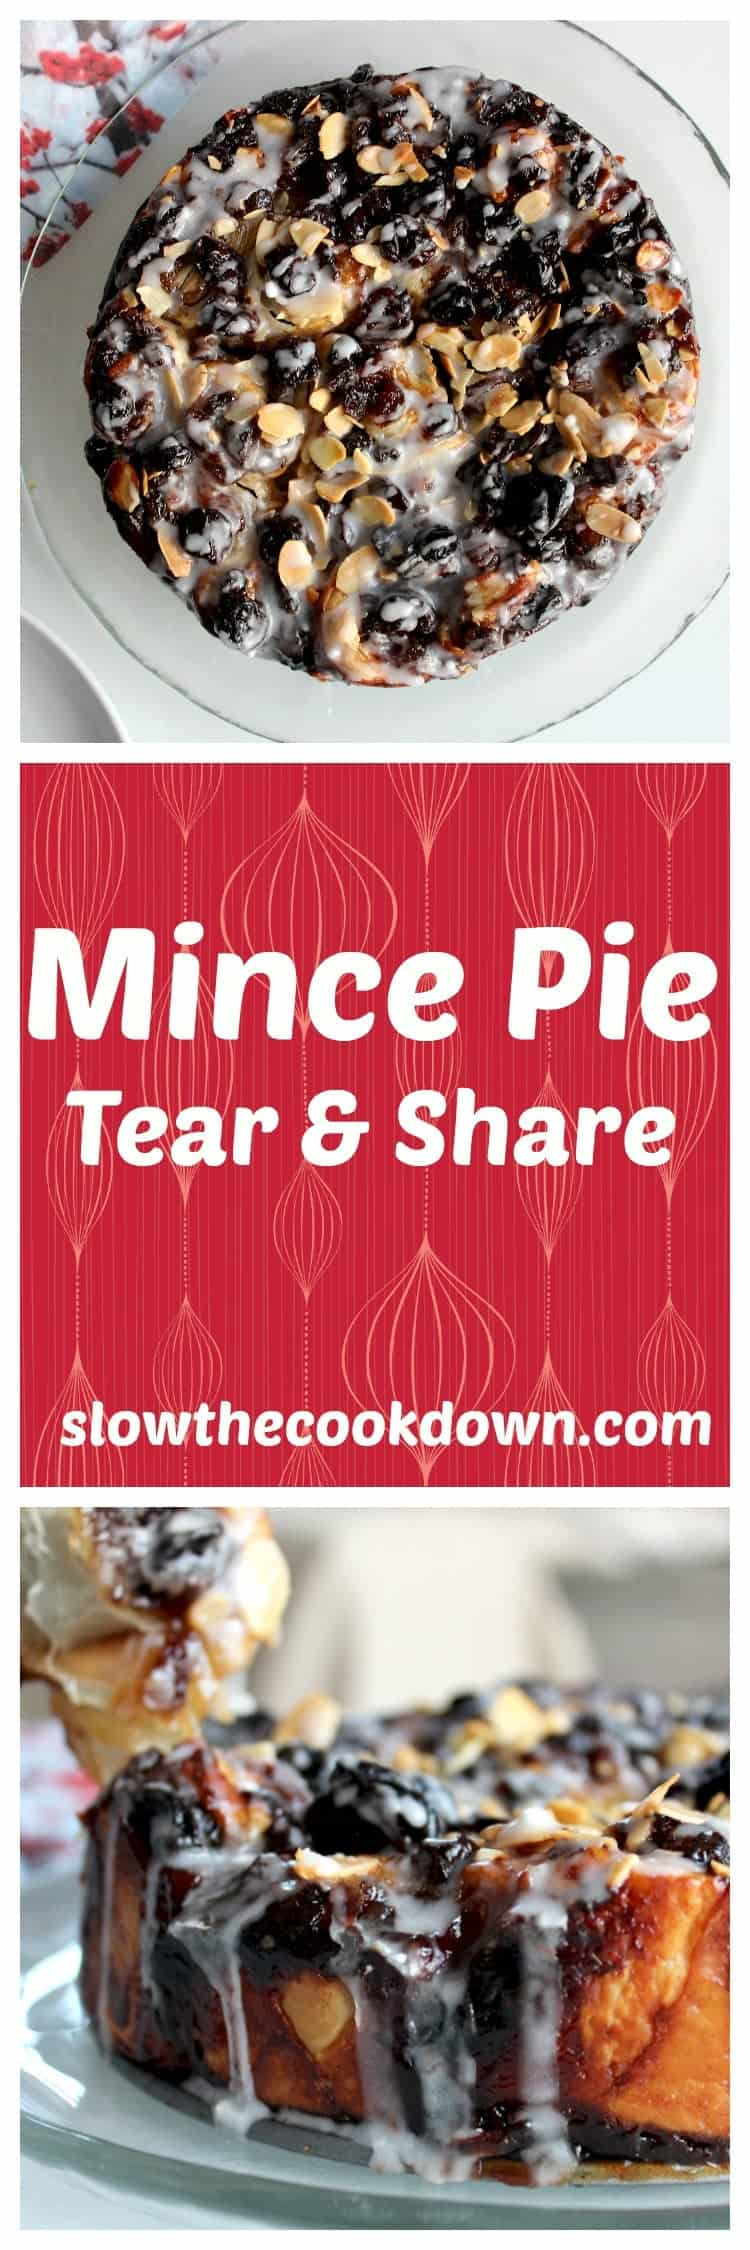 Mince Pie Tear & Share